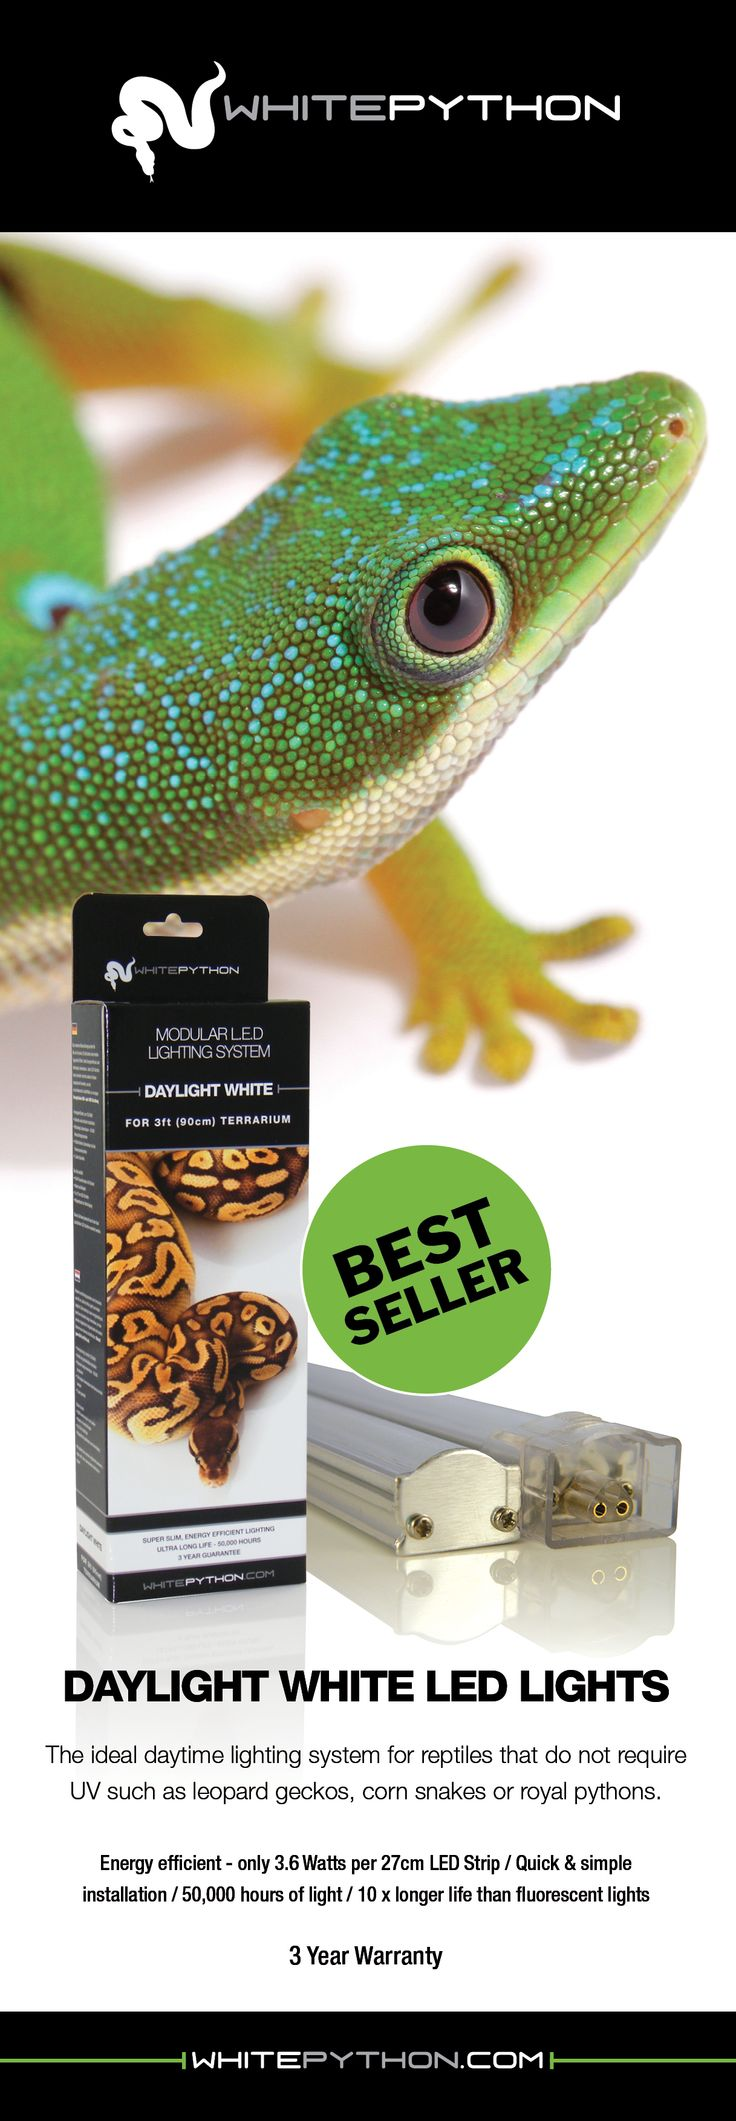 WhitePython Daylight White LED Lights for Reptiles.